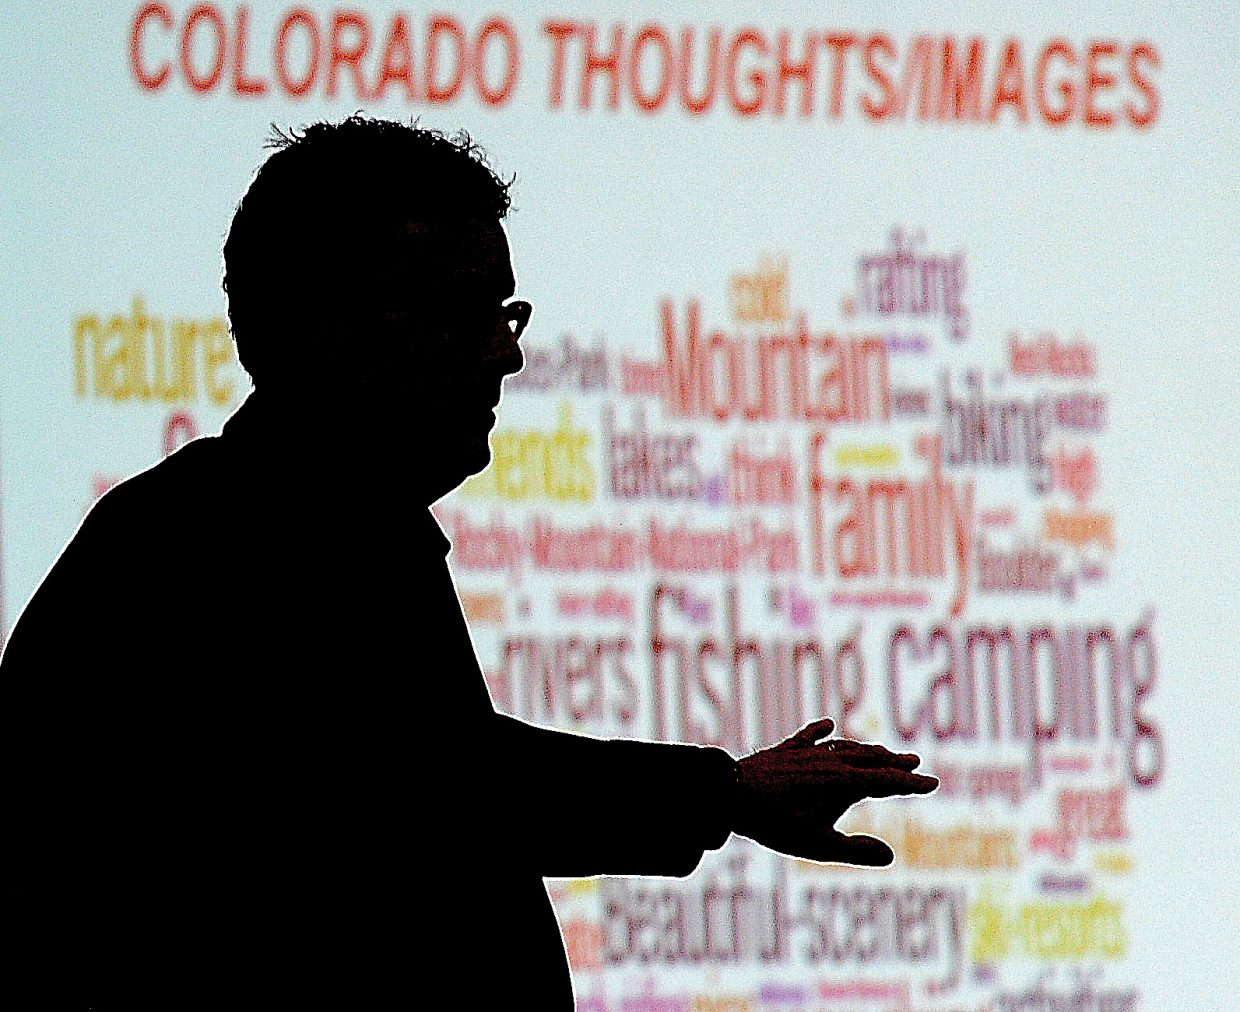 John Ricks, associate director for the Colorado Tourism Office, presents the keynote address at the Navigator Awards luncheon, which was held Tuesday at the Sheraton Steamboat Resort.